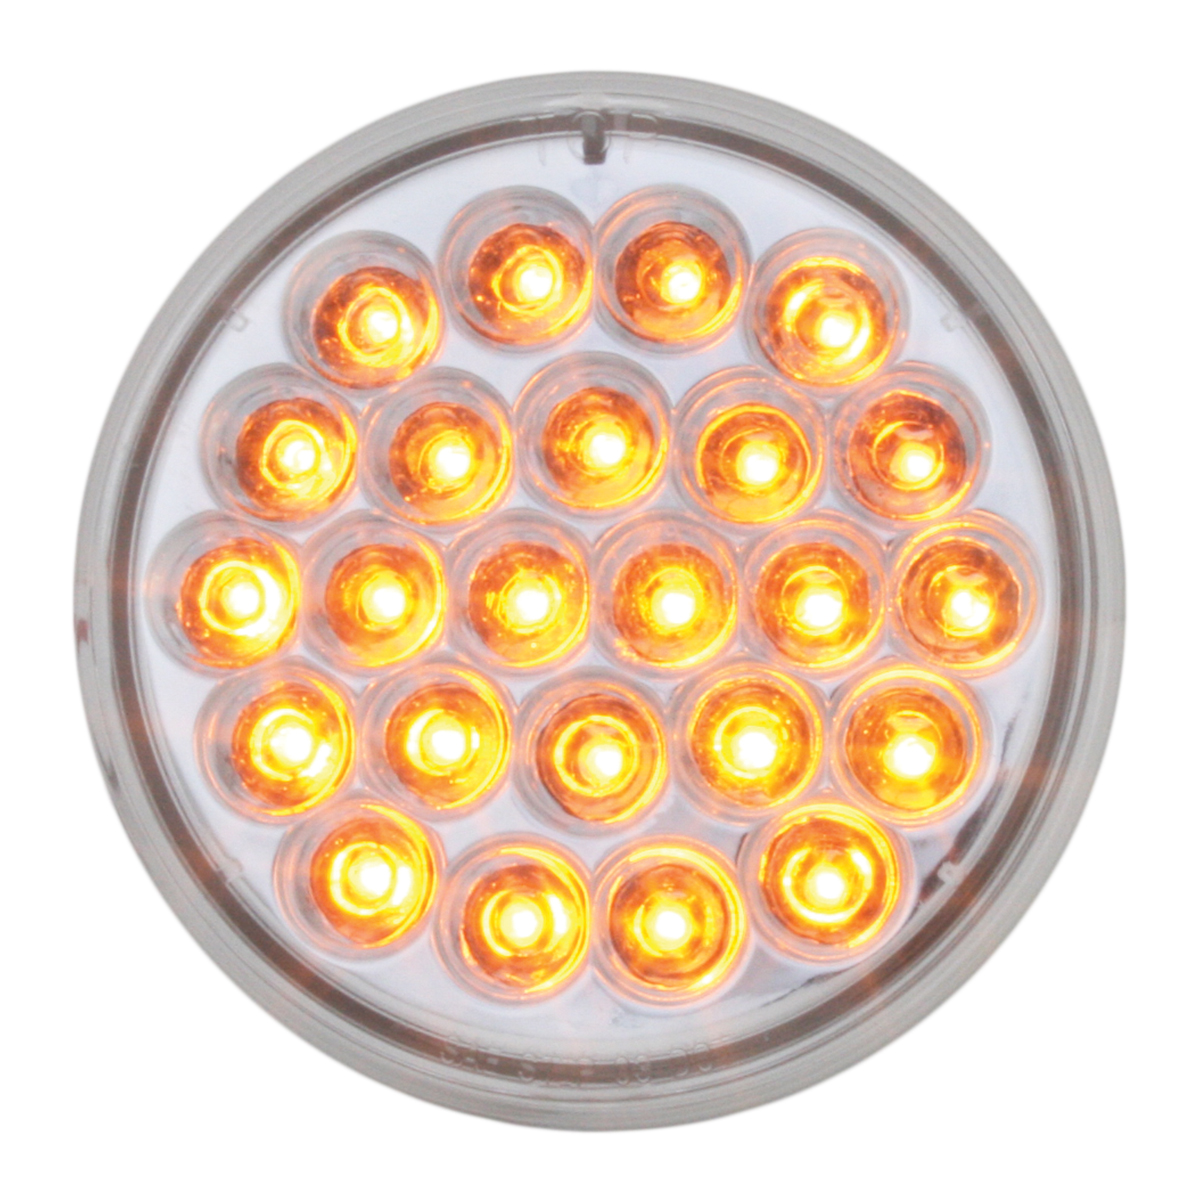 "76506 4"" Round Continuous Pearl LED Strobe Light"